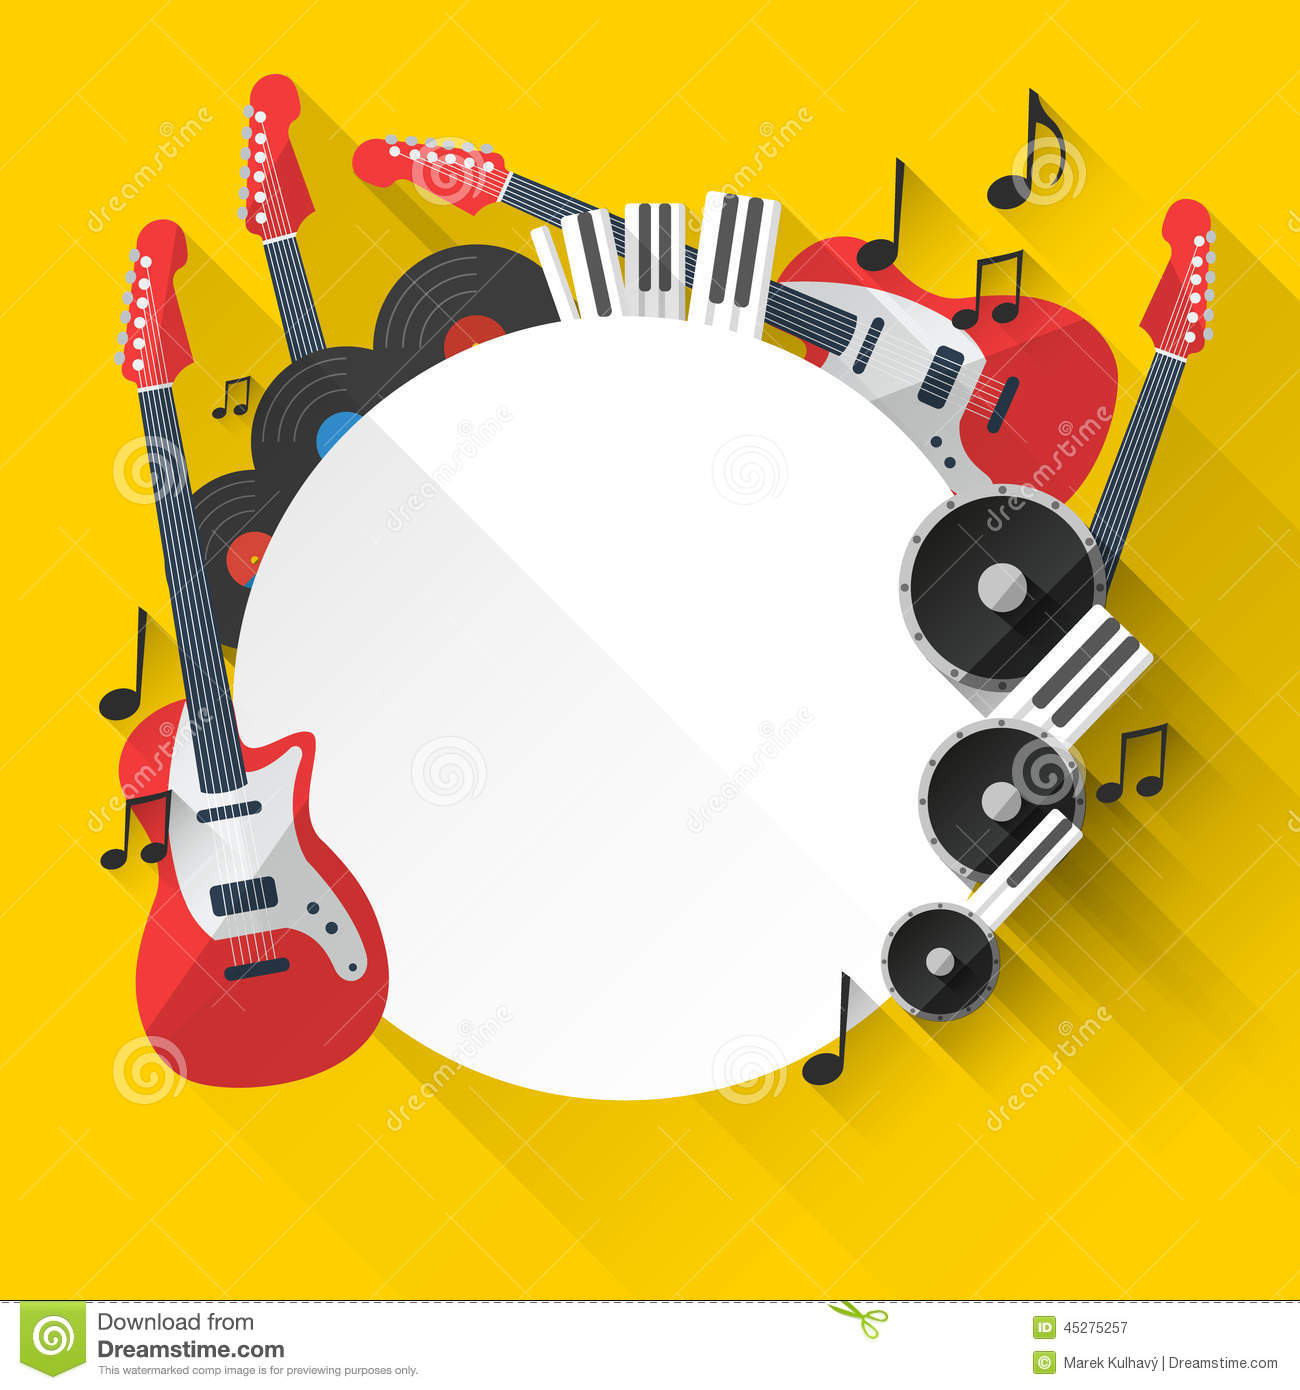 Image Result For Royalty Free Music Usage